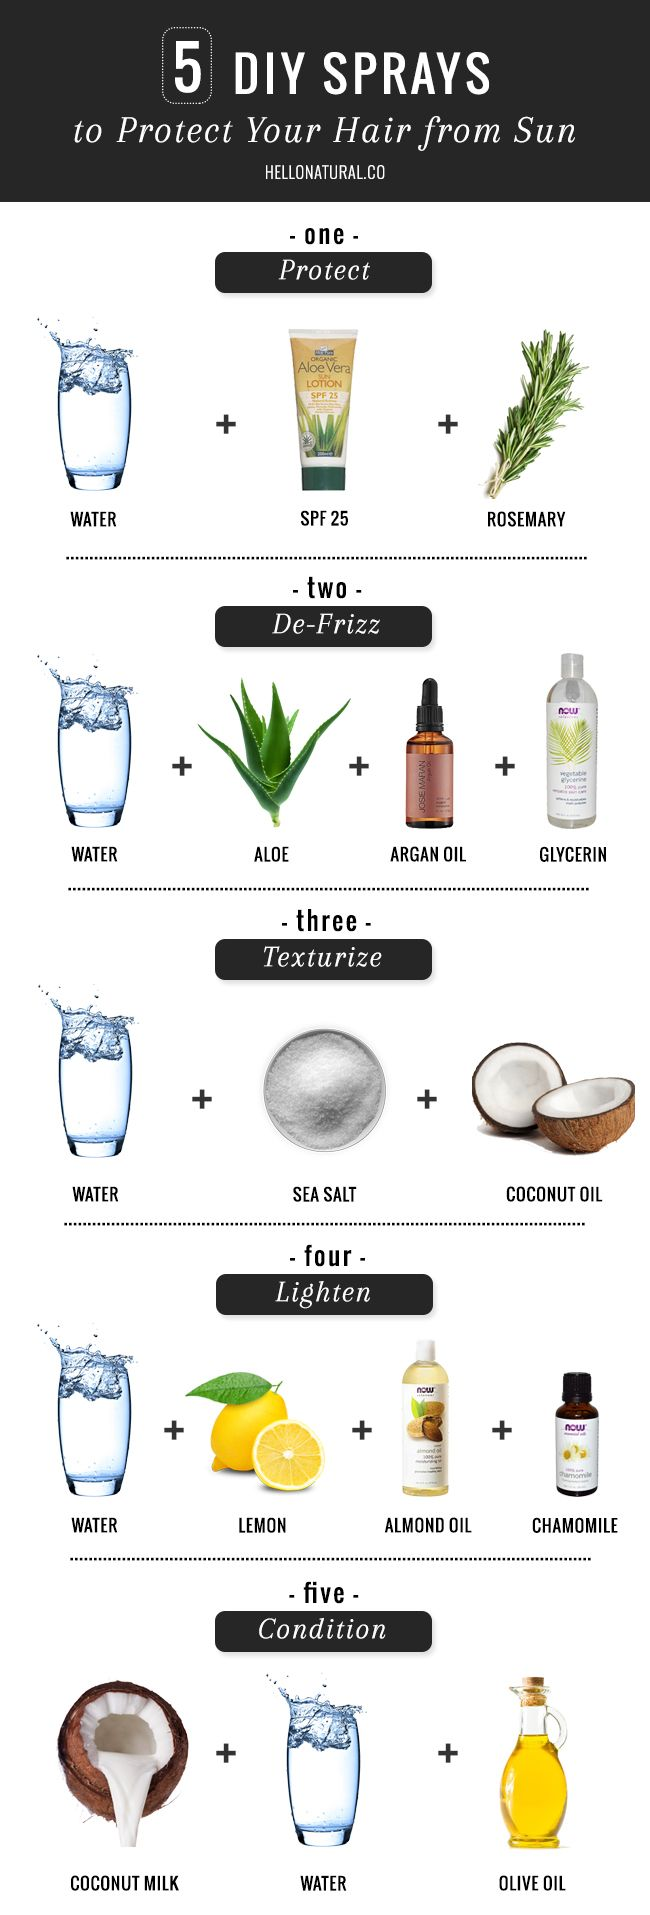 5 DIY Ways To Protect Your Hair from Sun, Heat Humidity | http://hellonatural.co/how-to-protect-your-hair-from-sun-heat-humidity-with-diy-sprays/